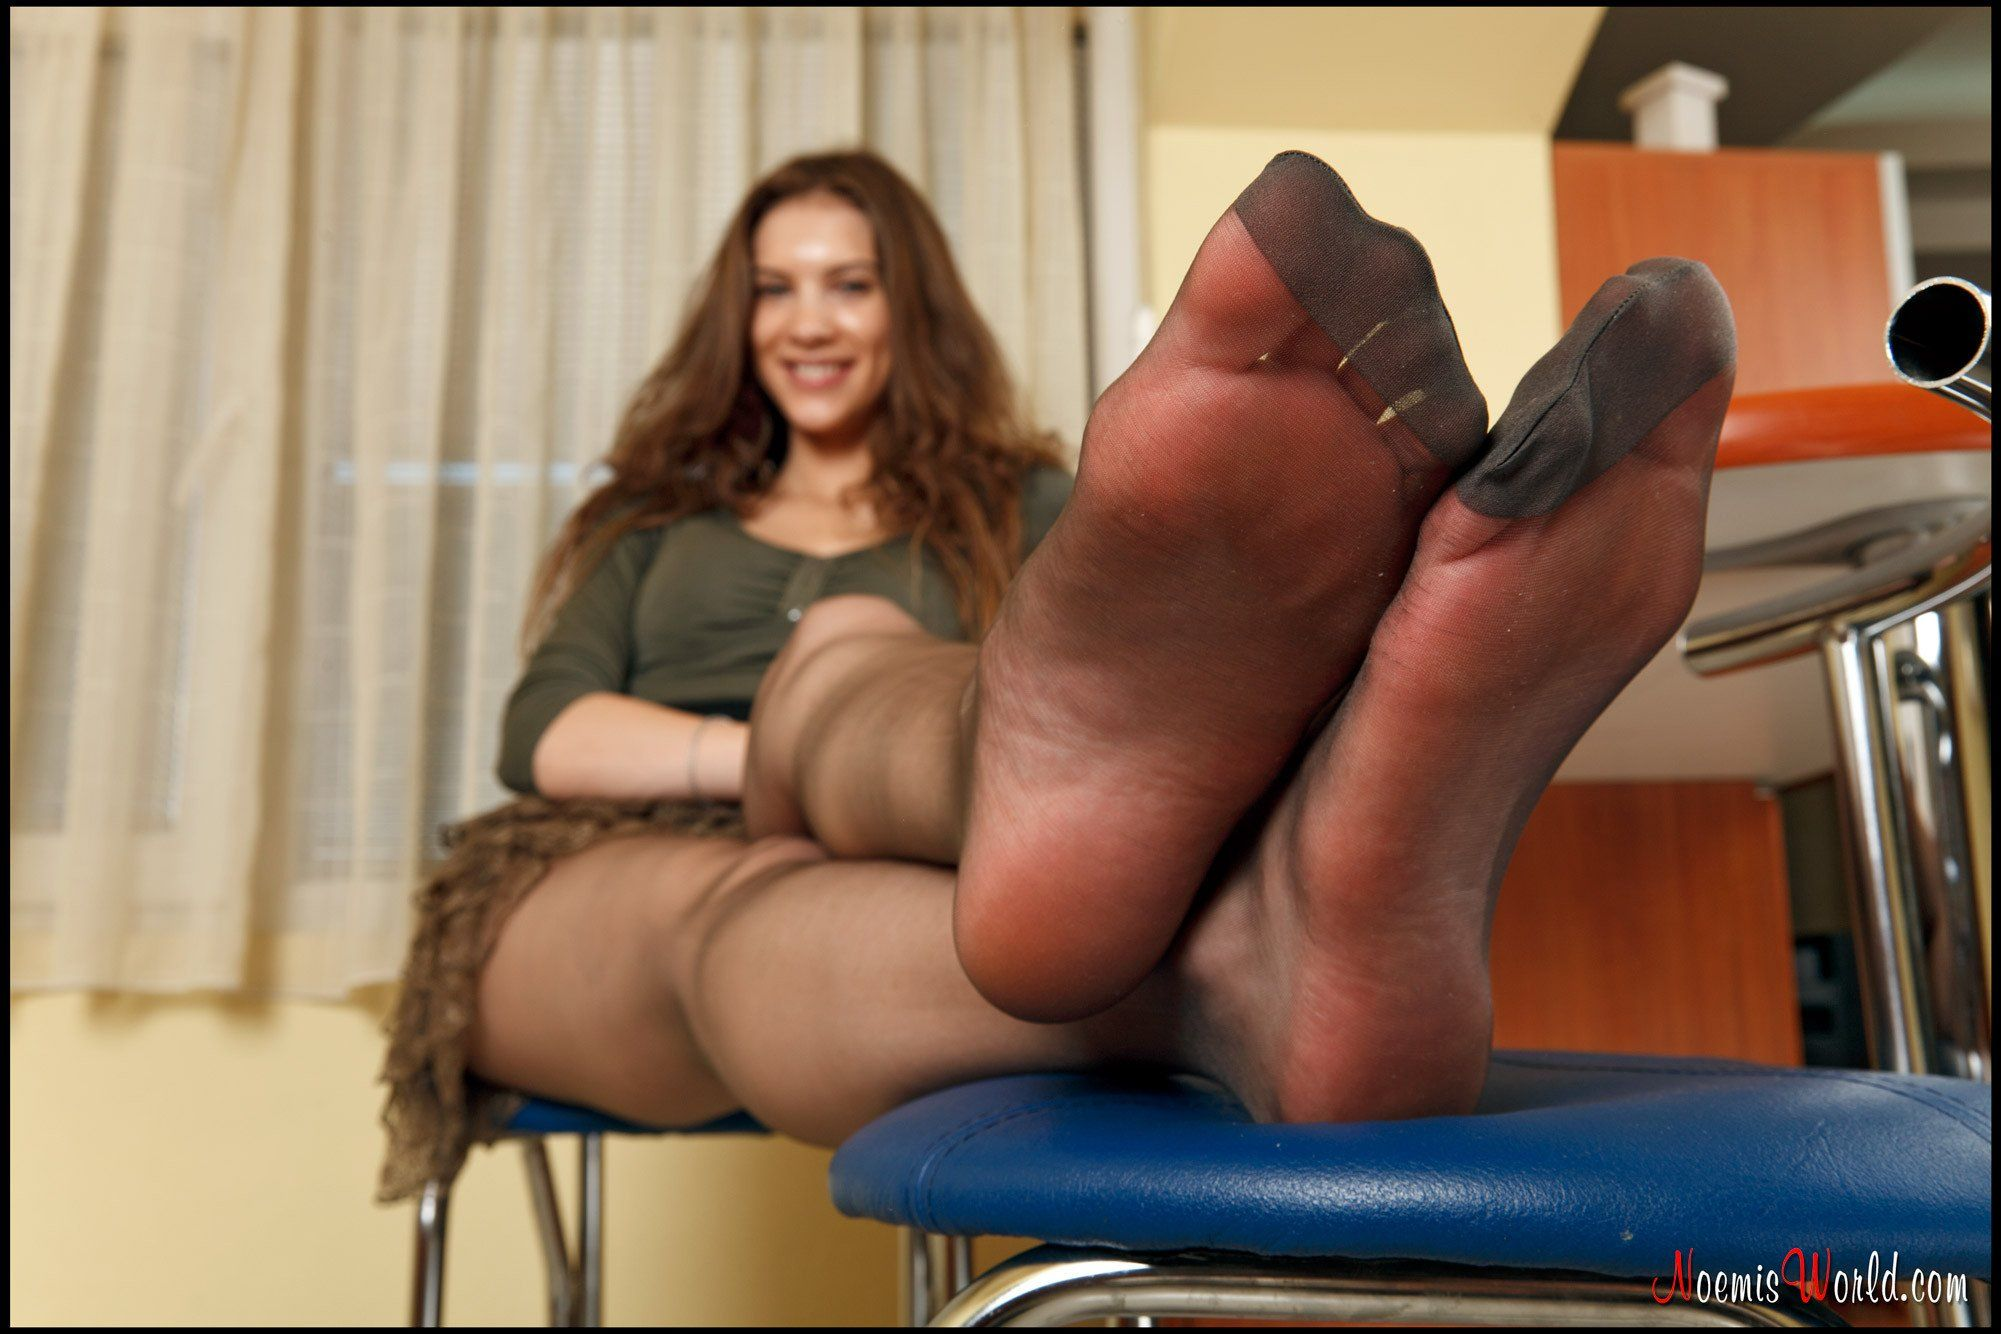 Consider, that latina foot porn free question can